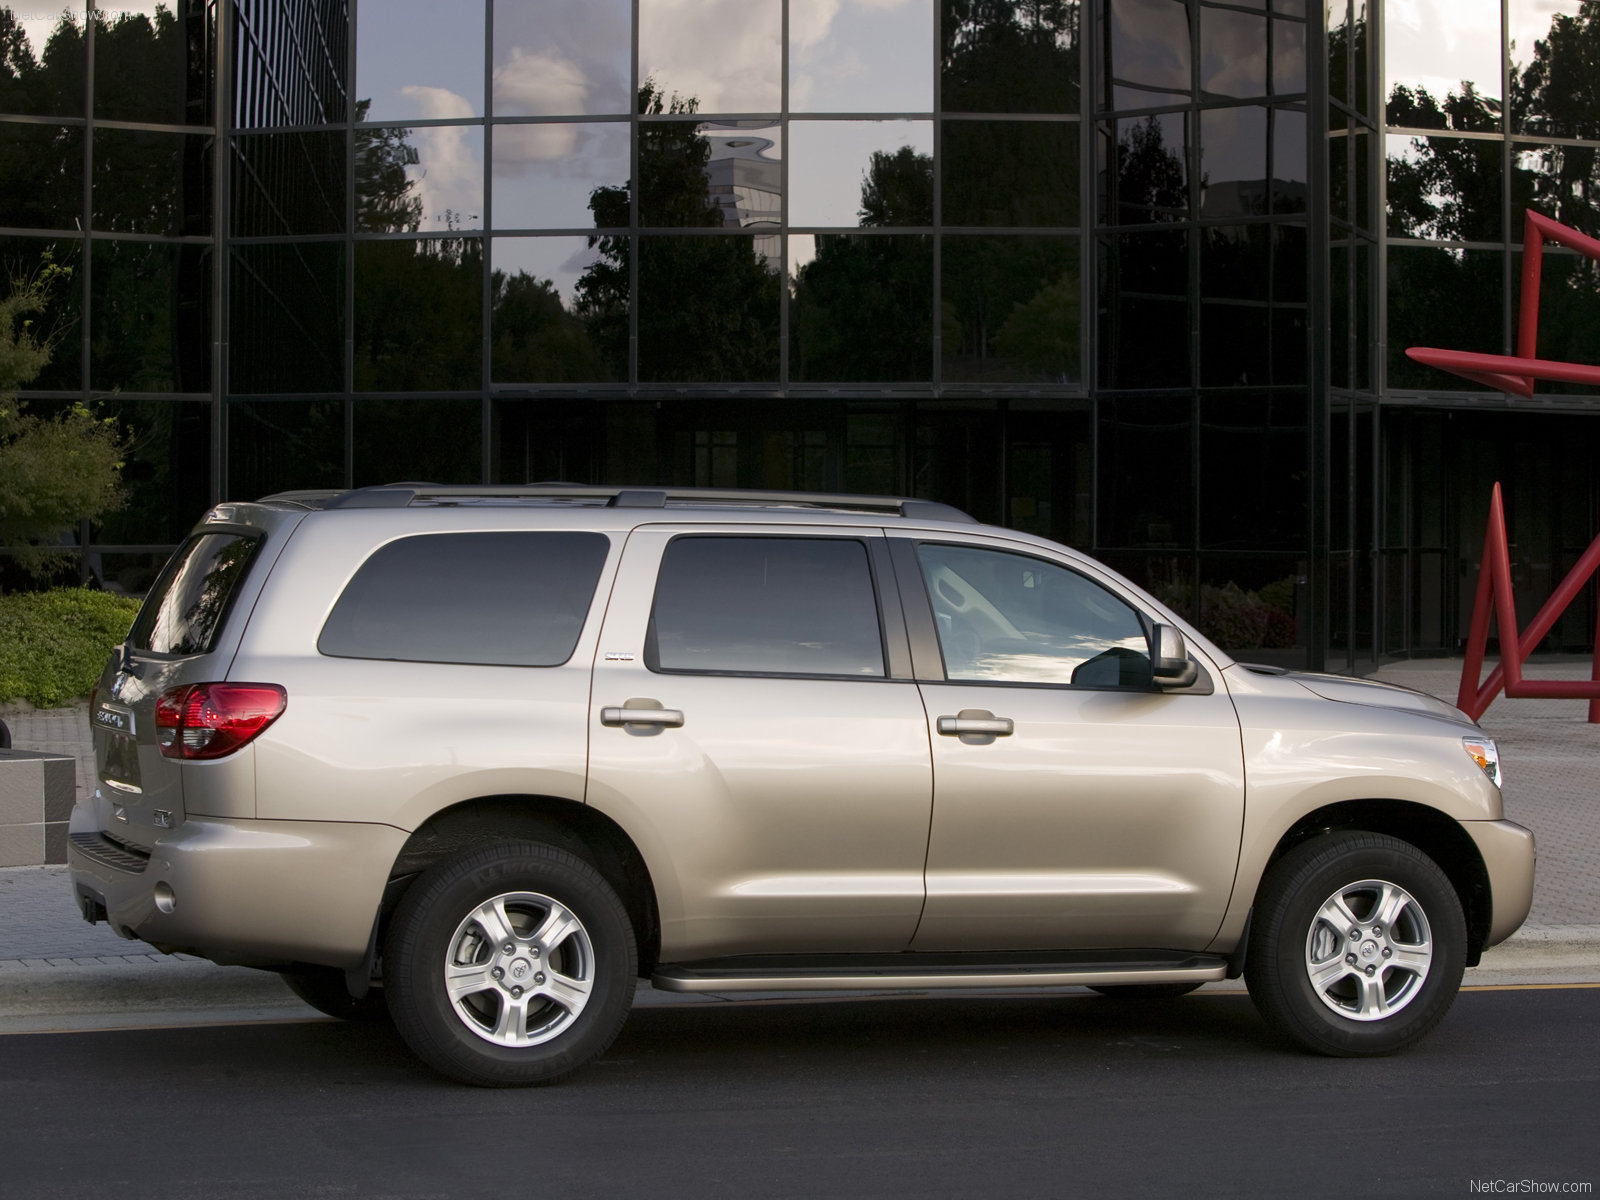 Toyota Sequoia photo 49419